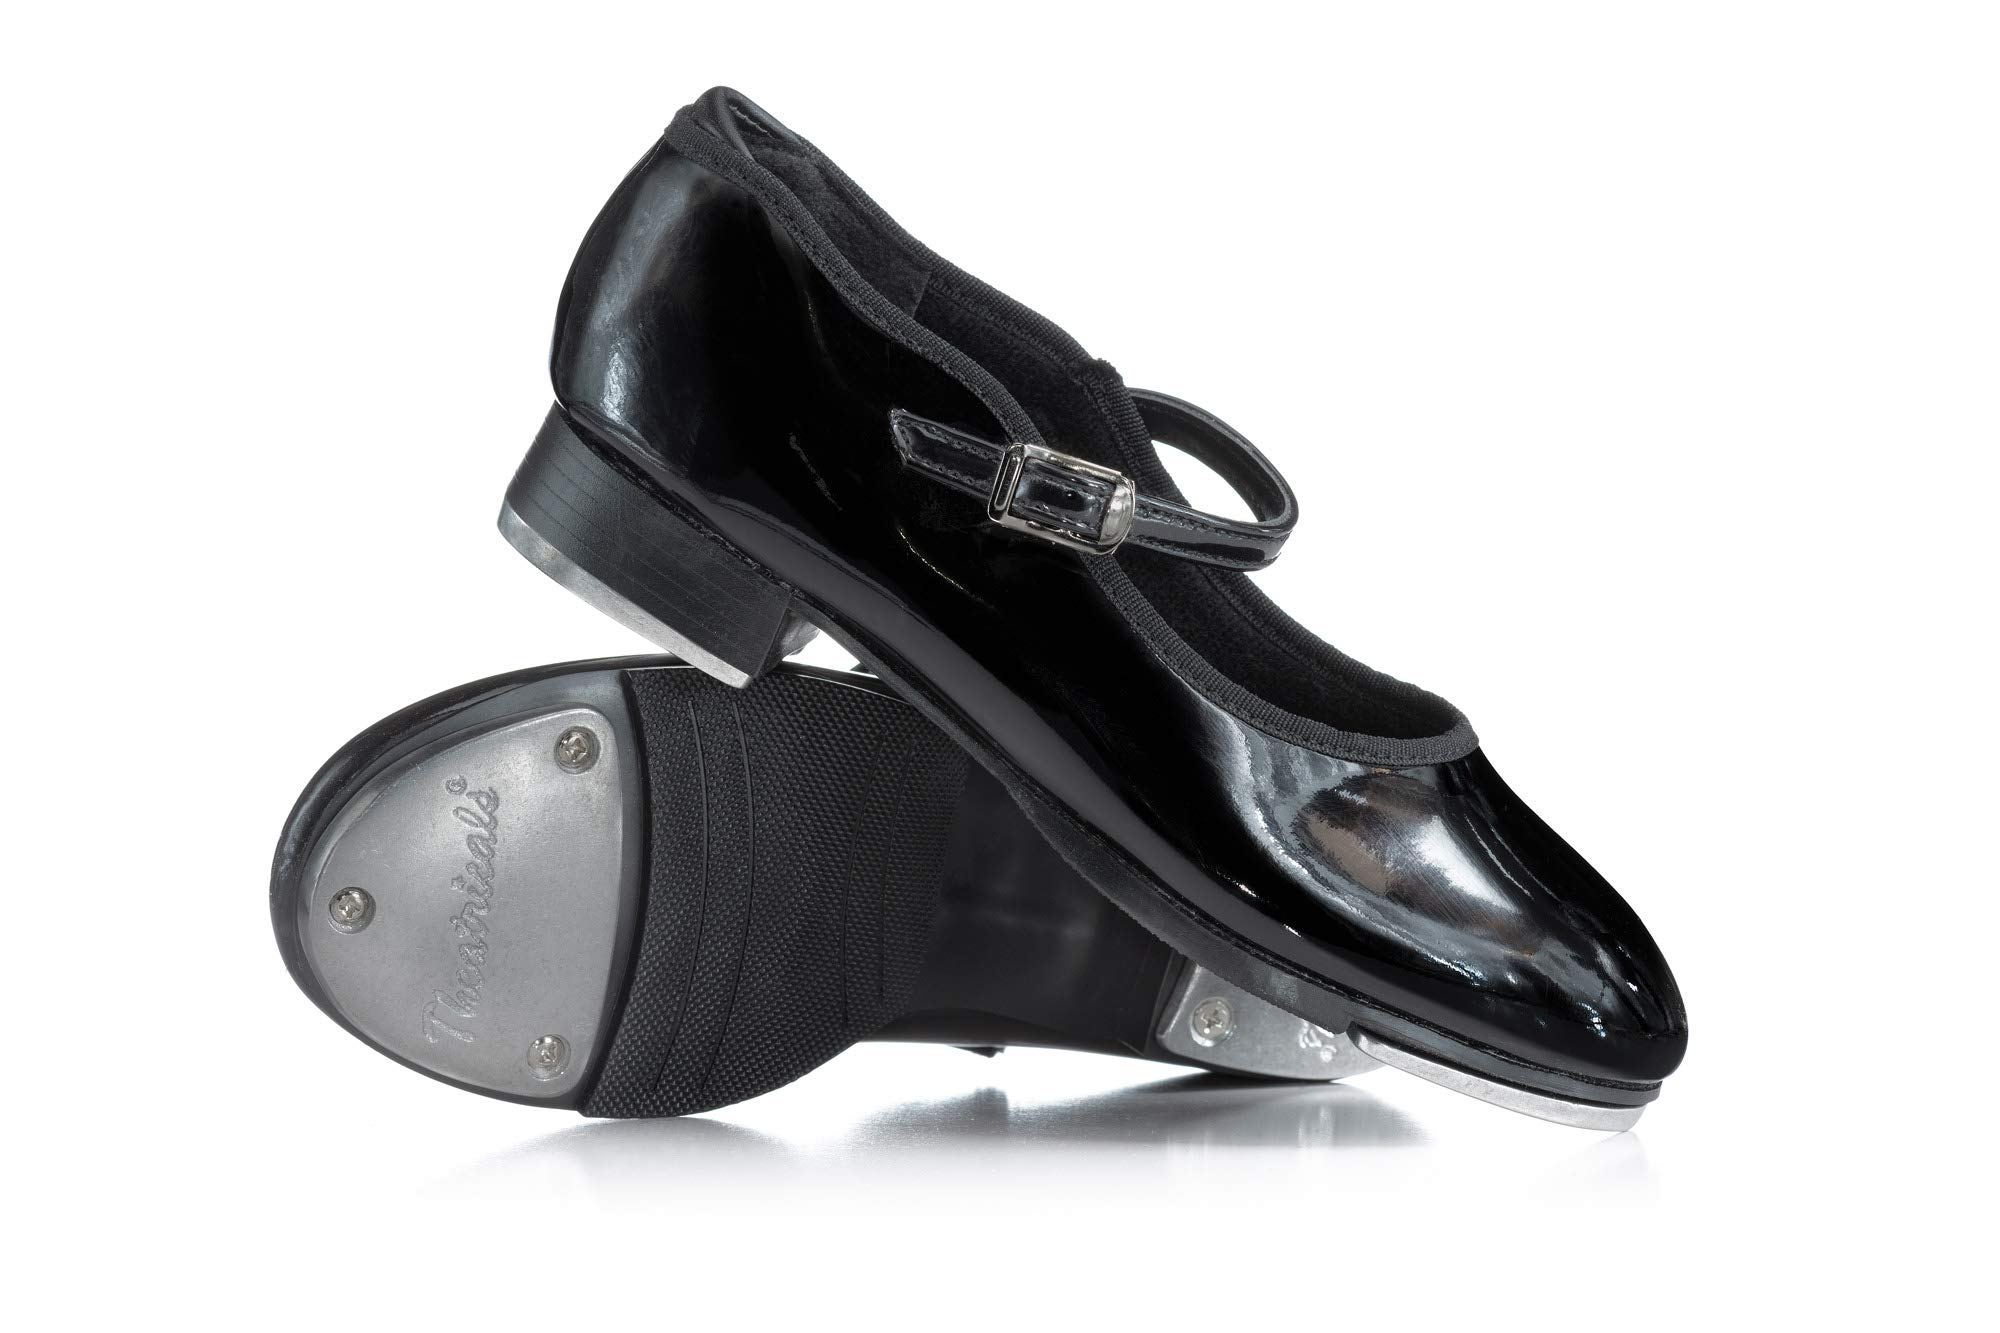 Theatricals Girls TapRite Molded Tap Slide Buckle Tap Shoes T9415CBLK13.5W Patent 13.5 W US Little Kid by Theatricals